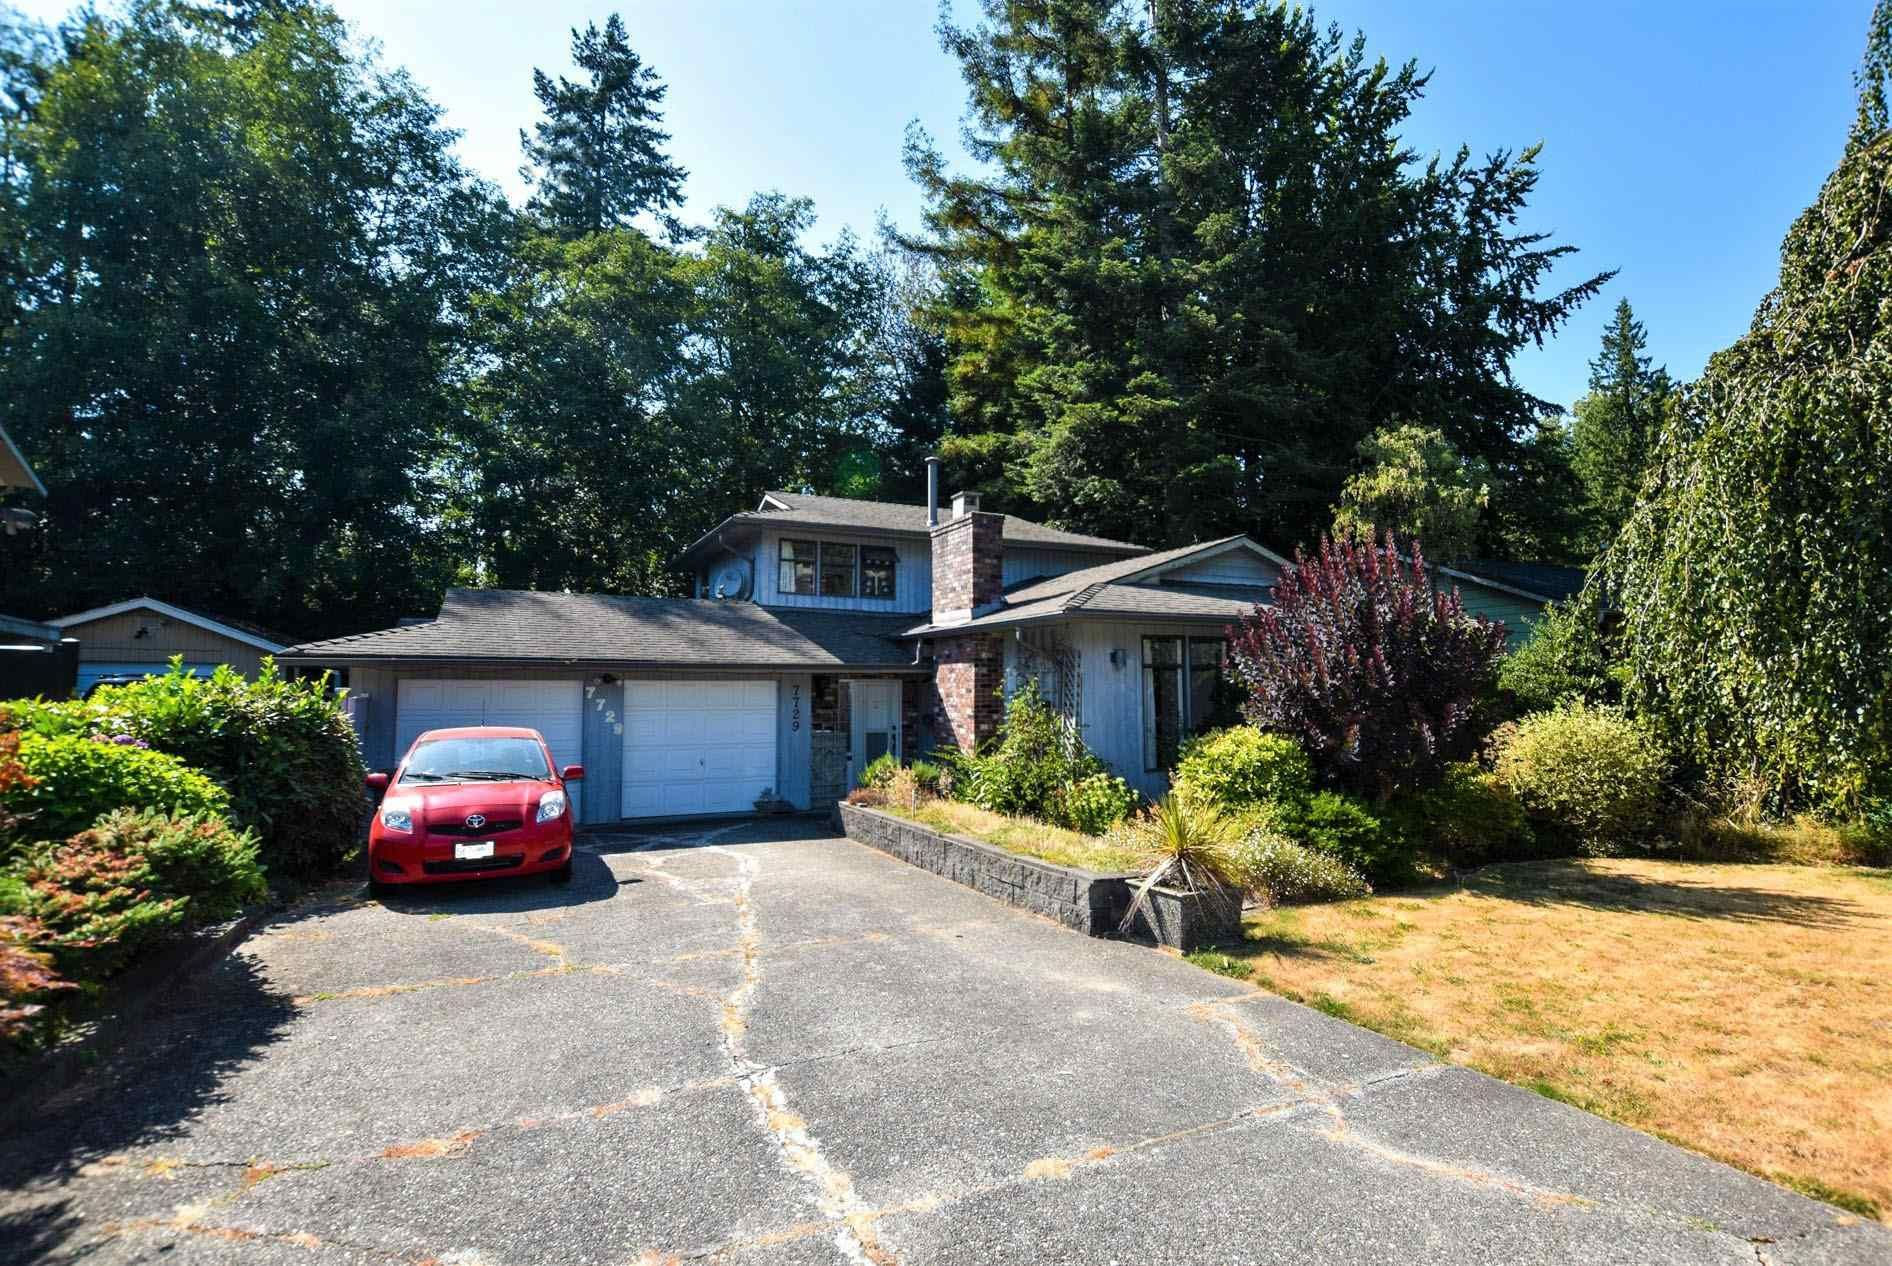 Main Photo: 7729 138 Street in Surrey: East Newton House for sale : MLS®# R2606838